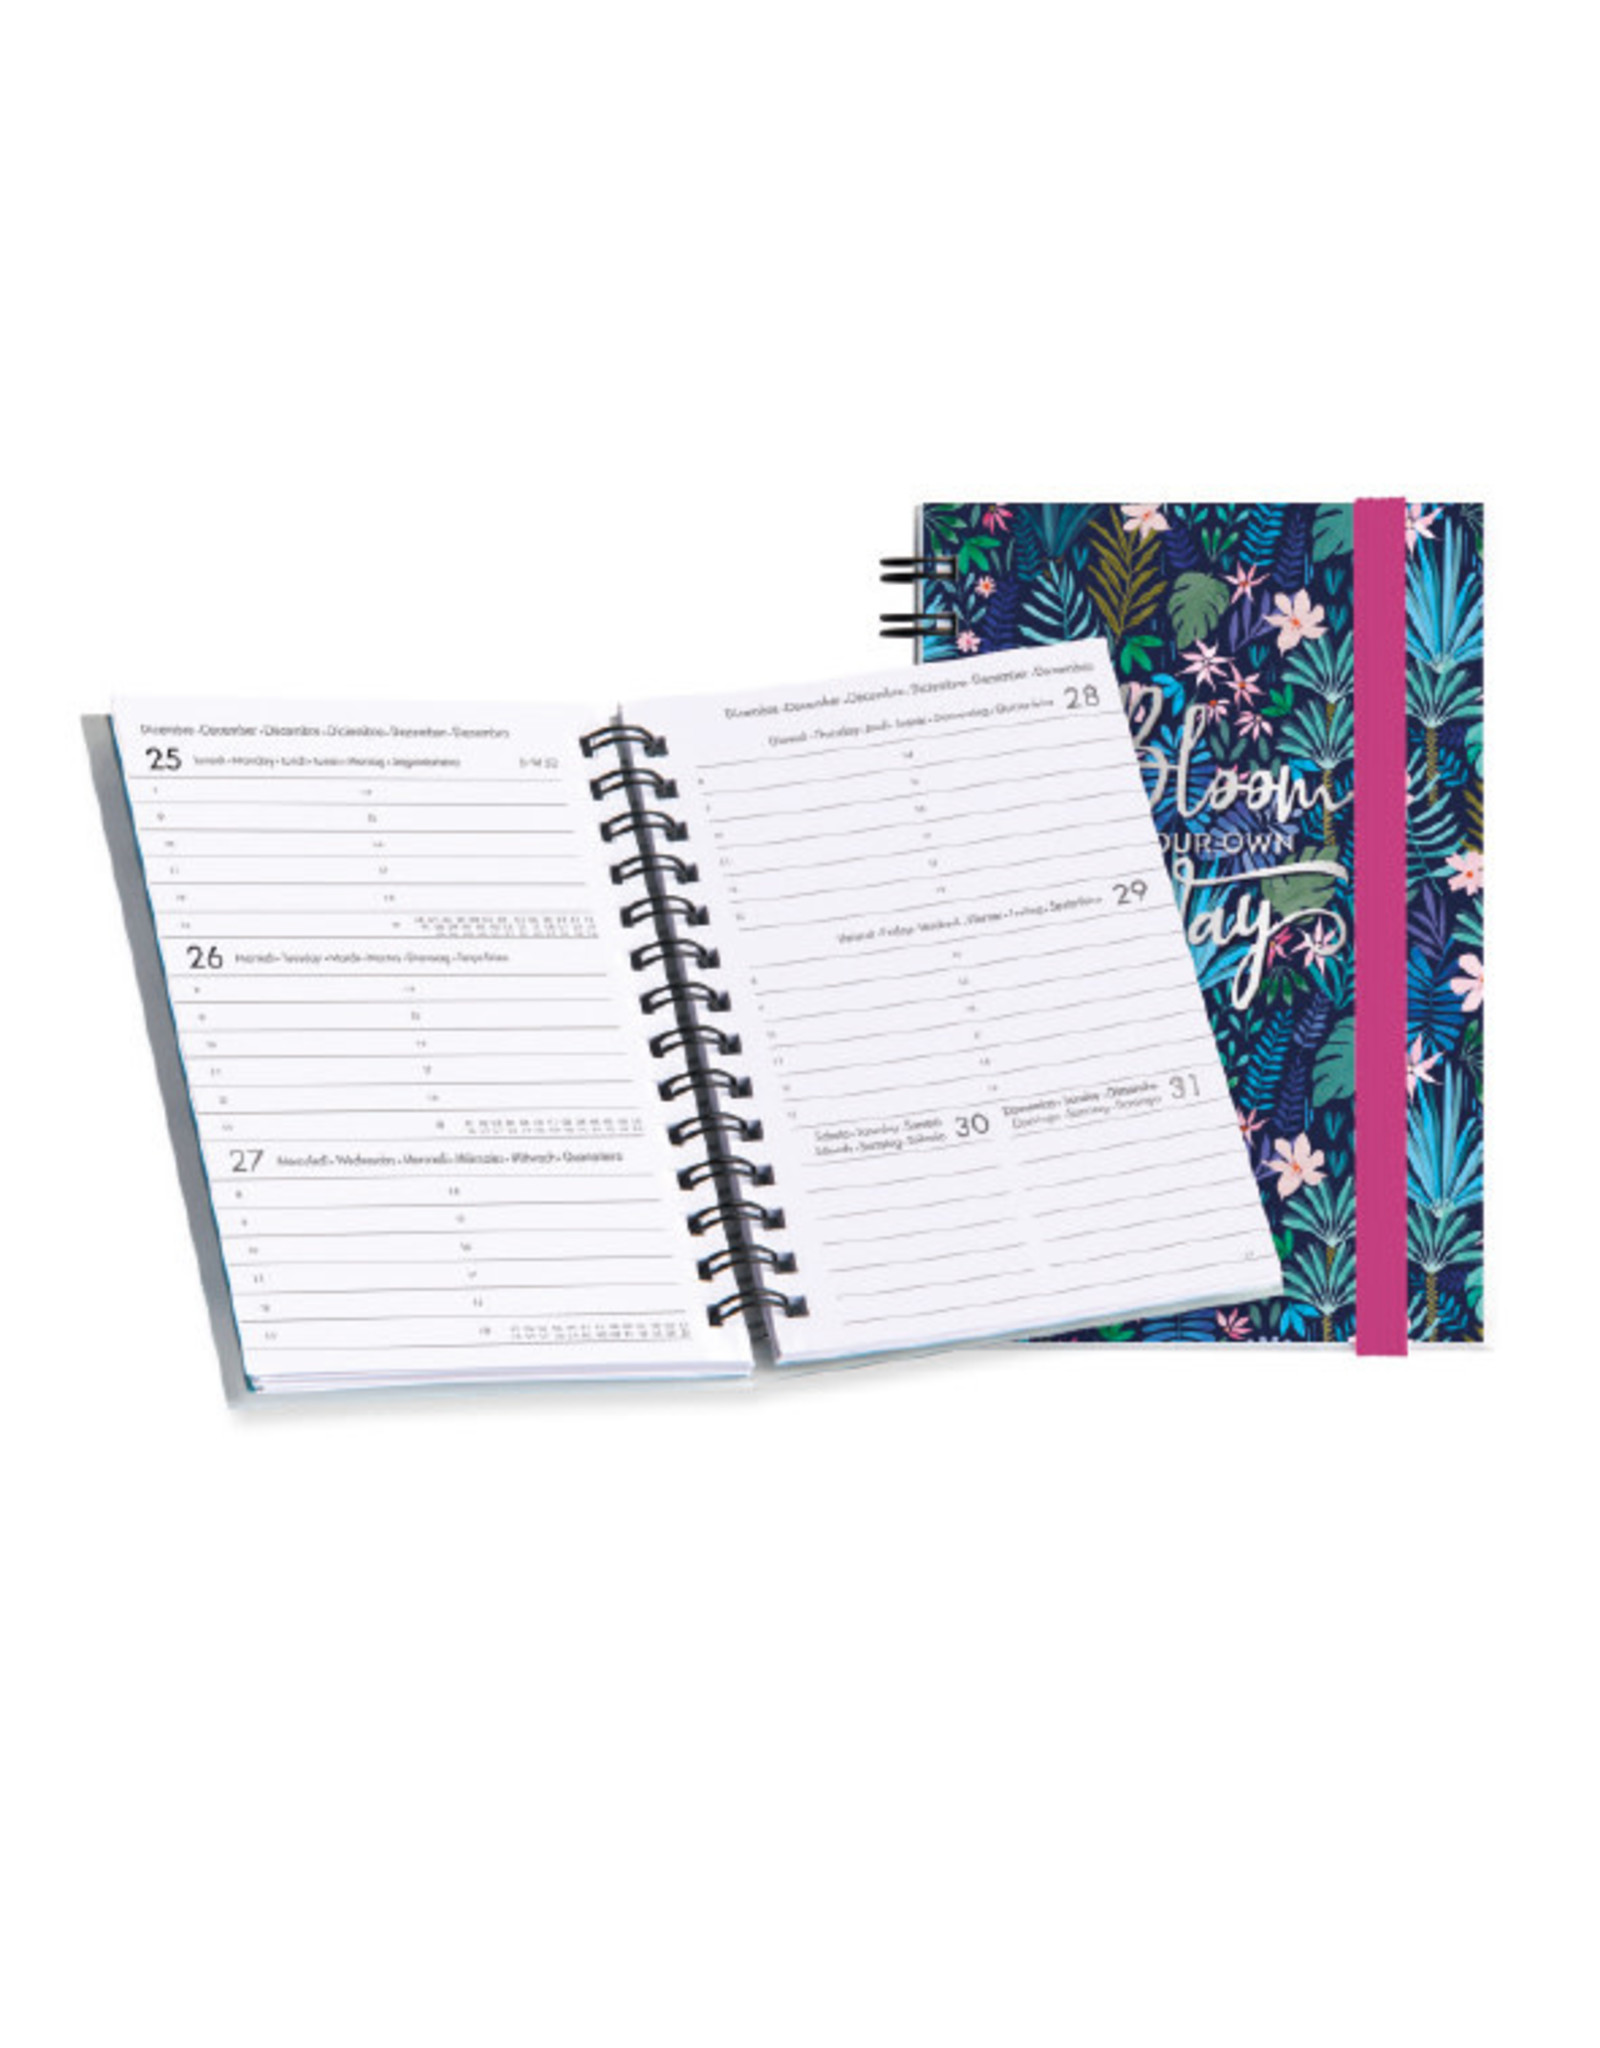 diary (12 months) with rings 'bloom your own way'